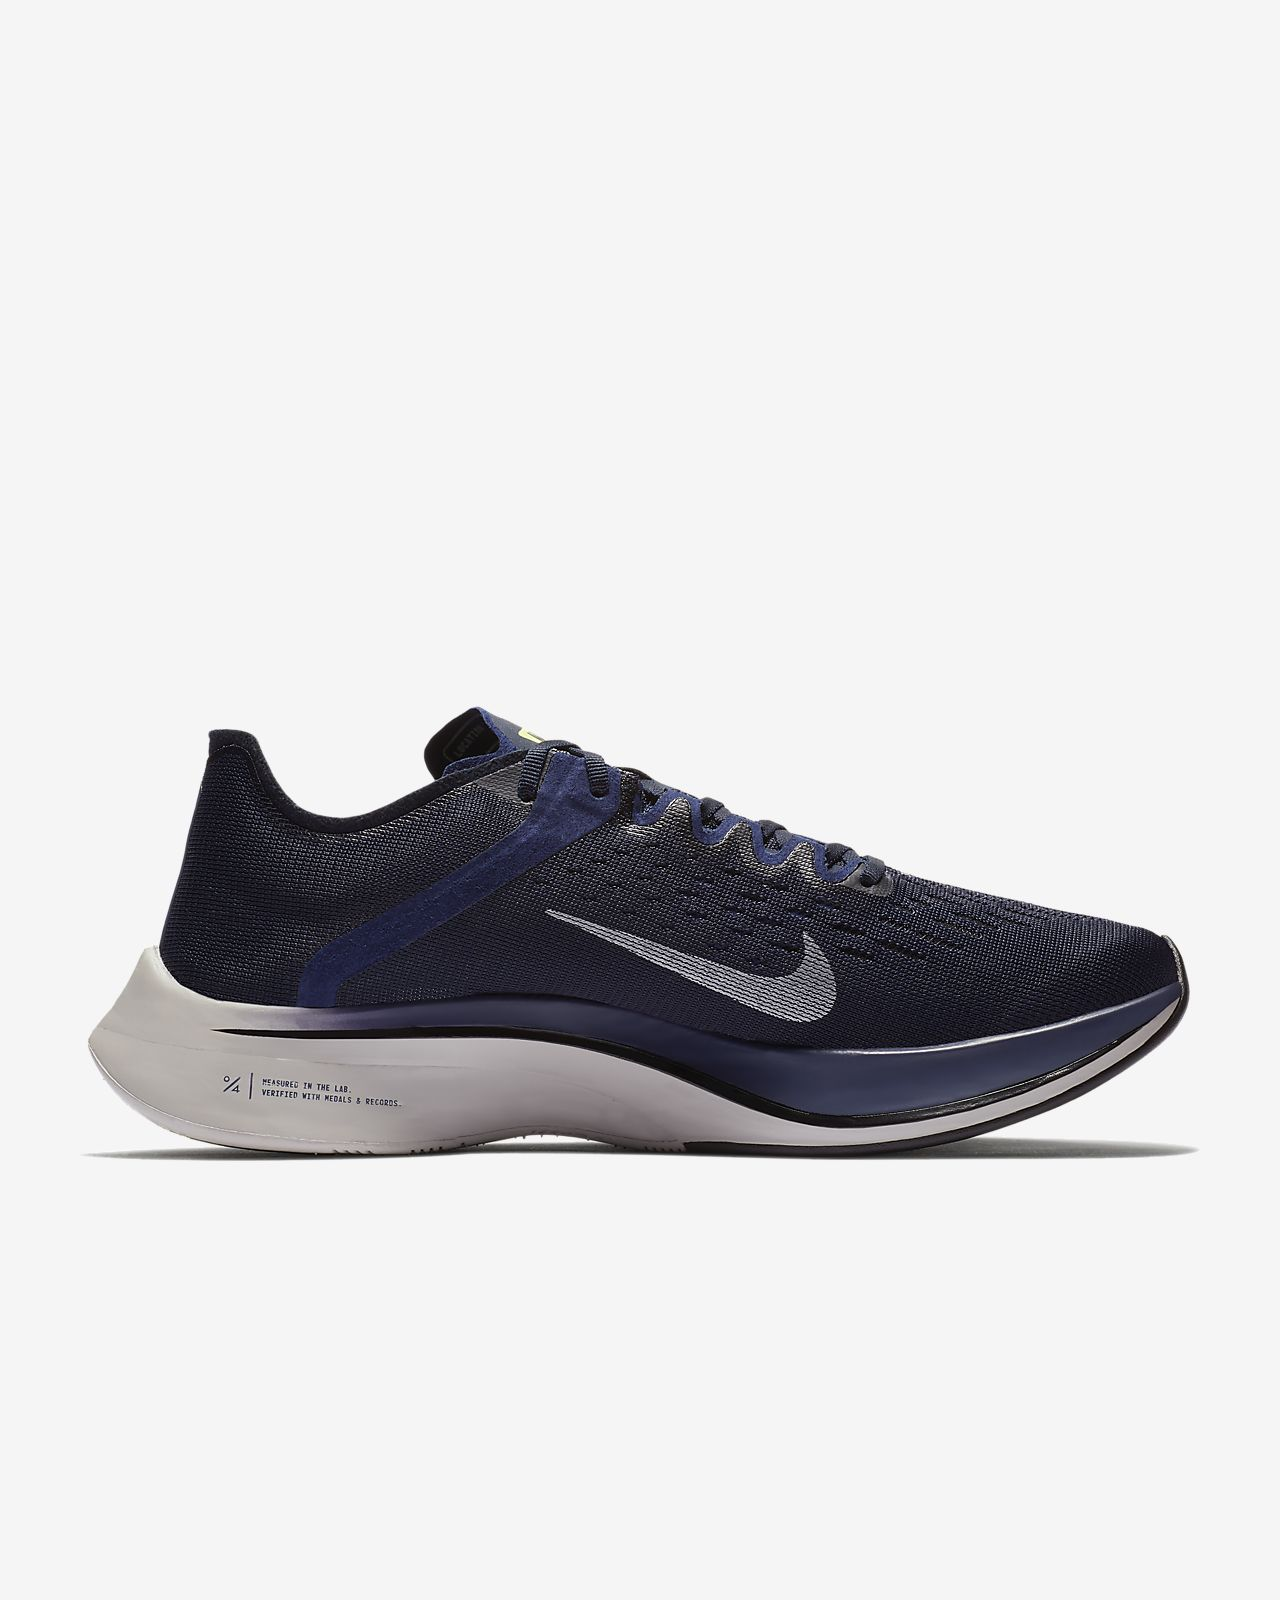 nike shoes 4 faster fox add-ons google 858032